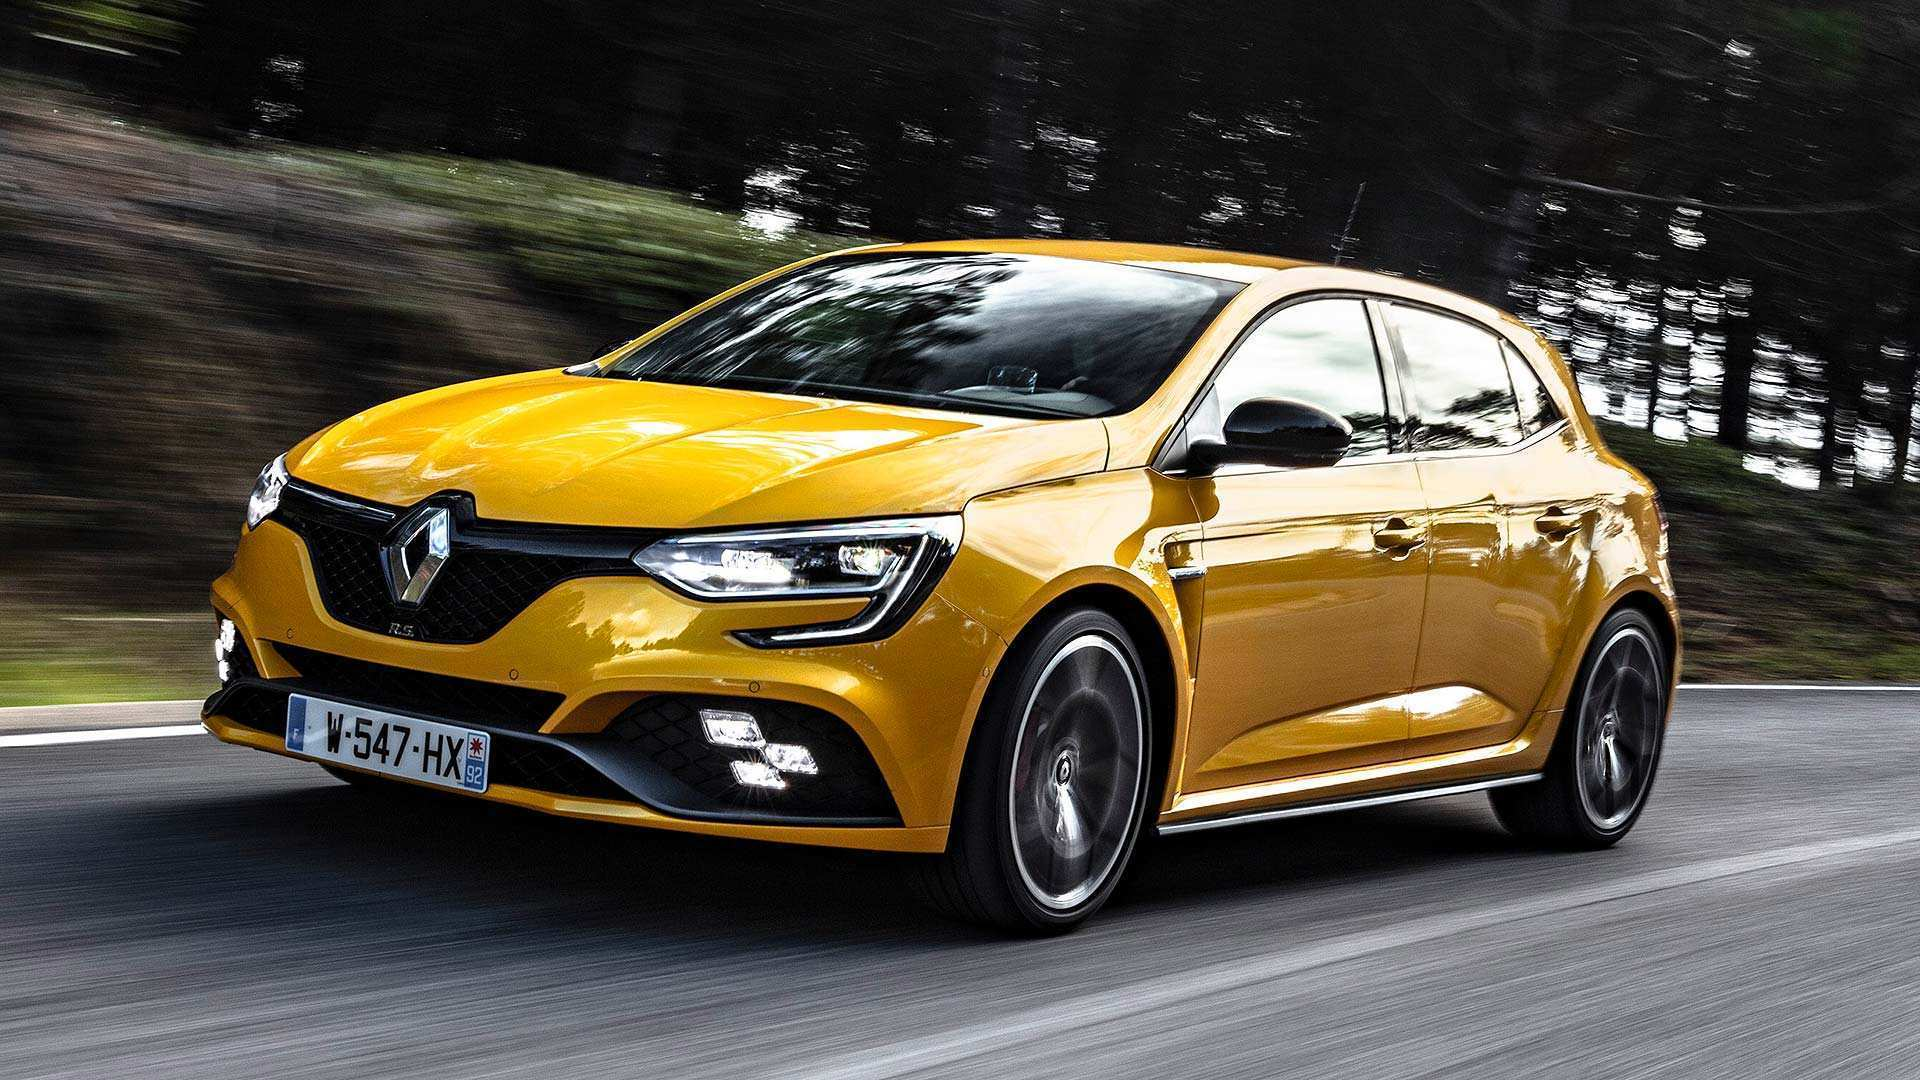 84 The 2019 Renault Megane Rs Exterior and Interior for 2019 Renault Megane Rs